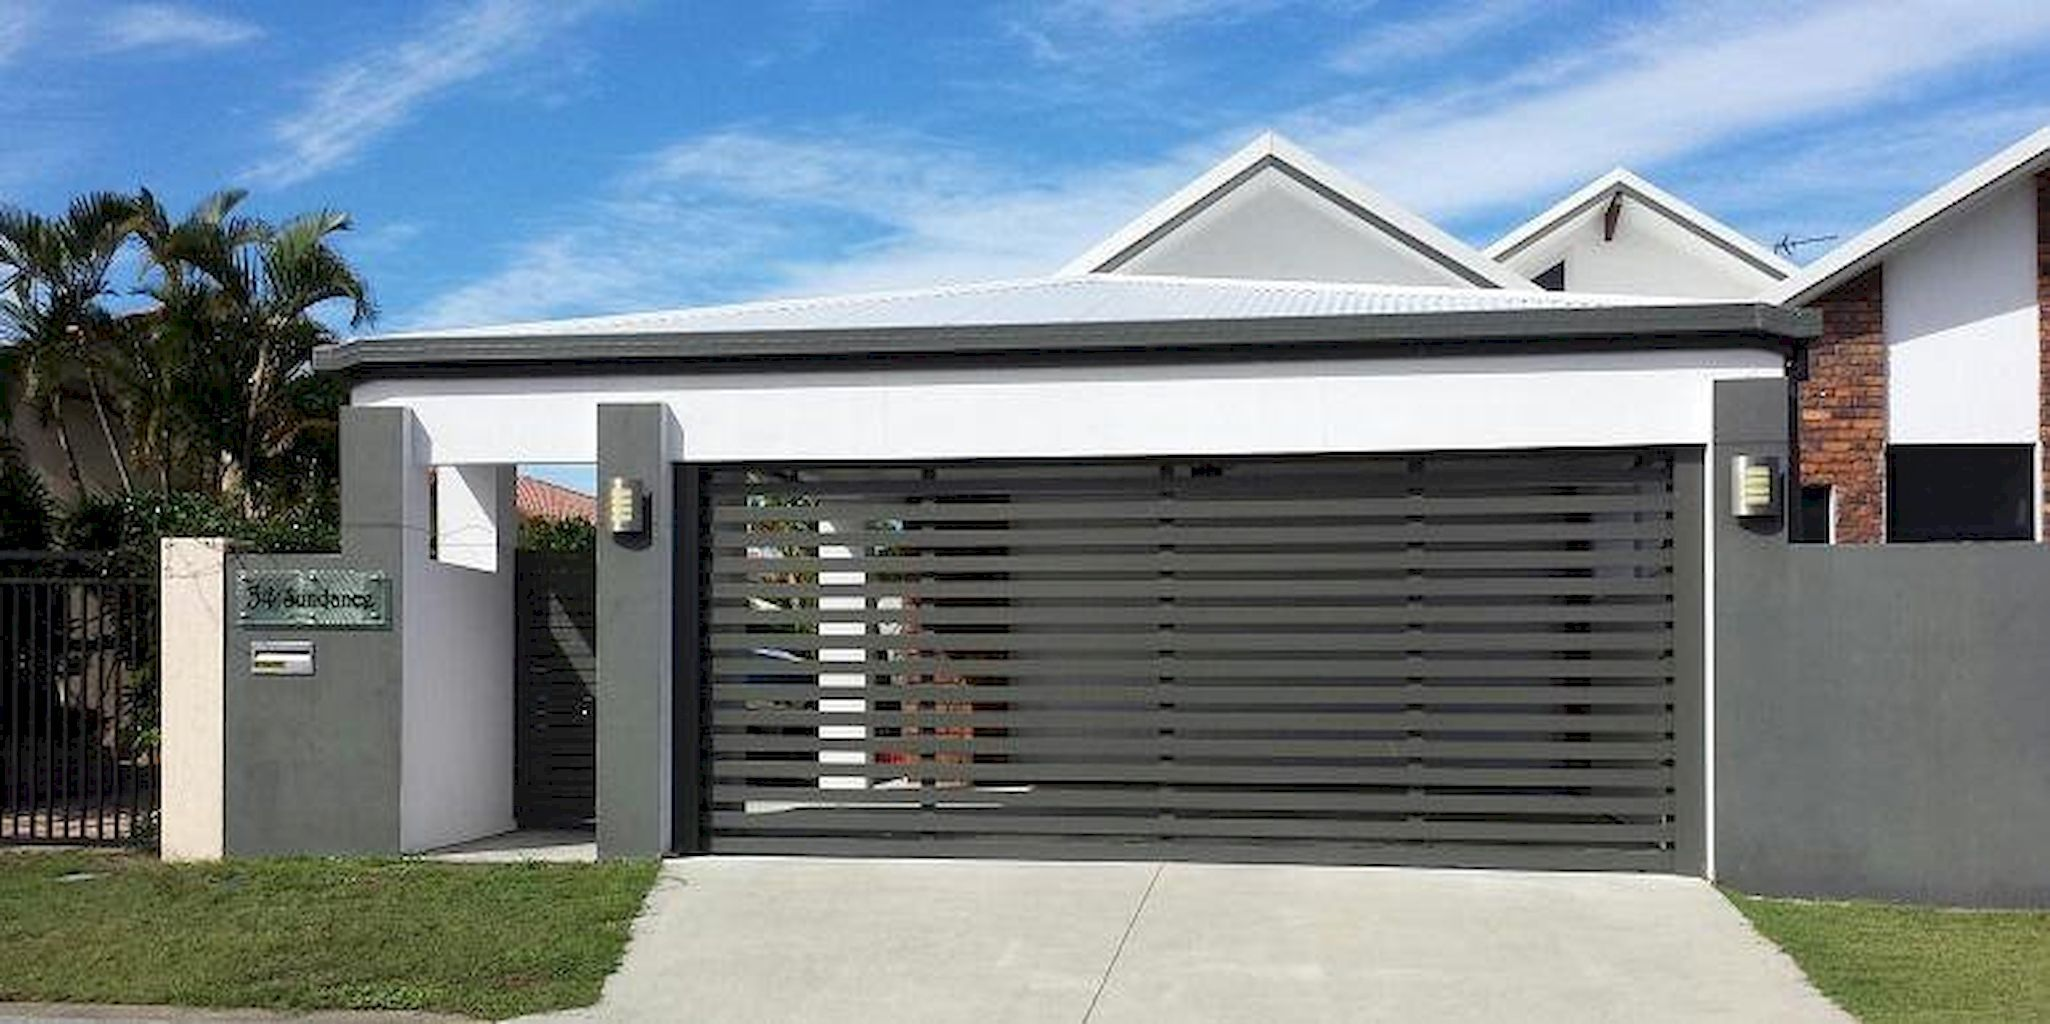 55 adorable modern carports garage designs ideas modern for Carport garage plans